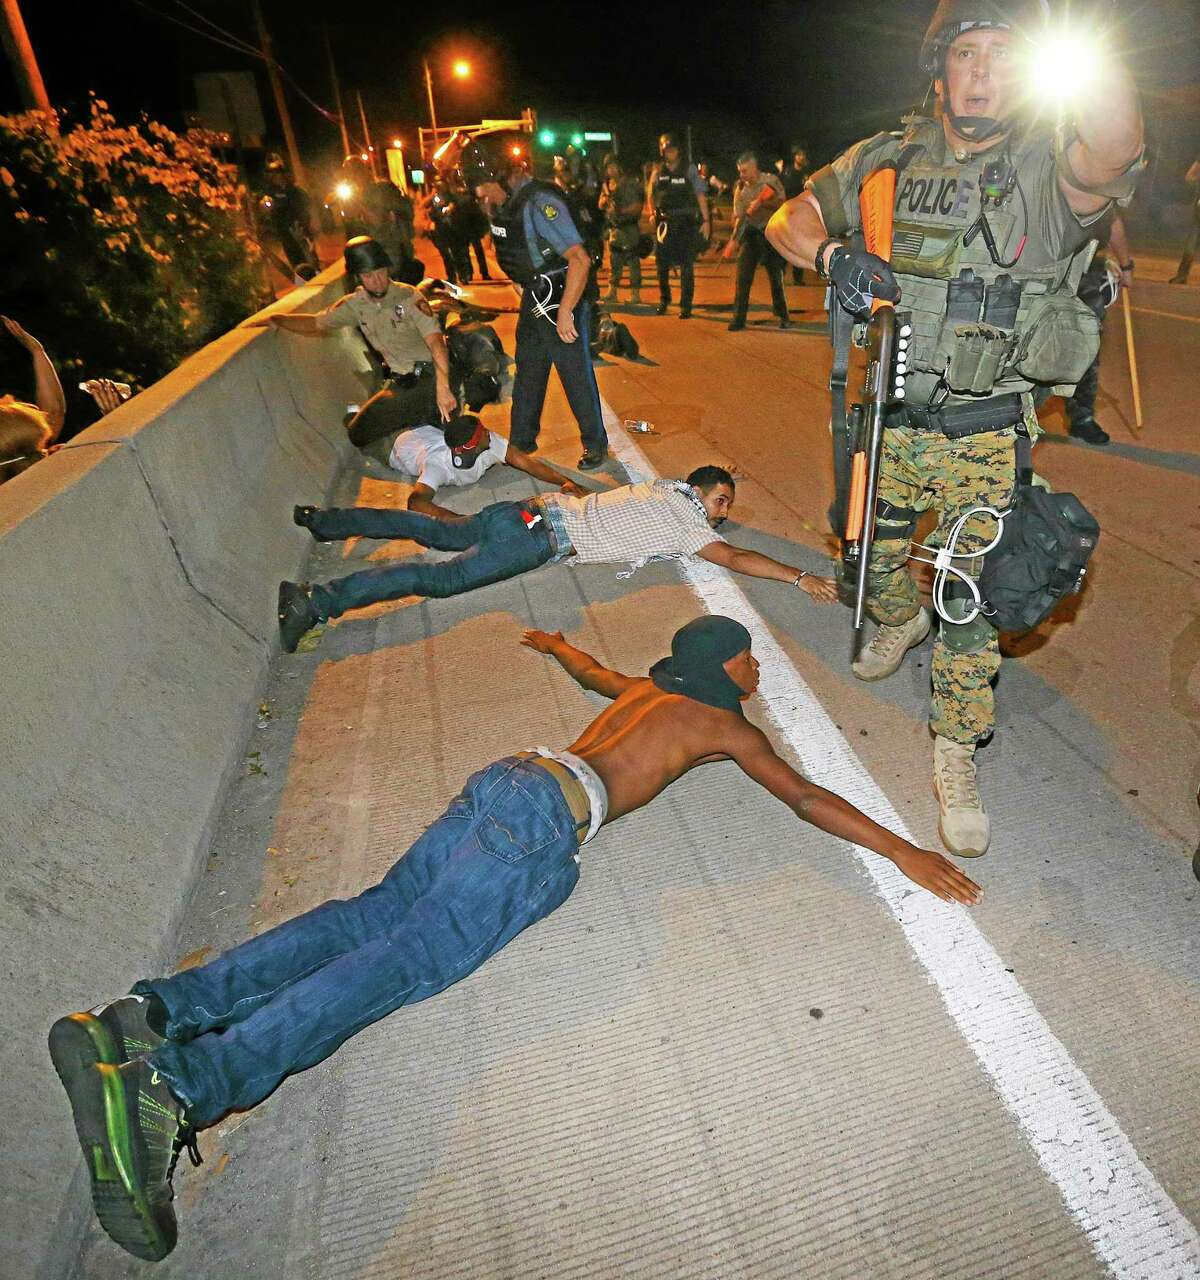 Police begin arresting dozens of protesters on West Florissant Avenue after they refused to leave the area and some began throwing objects at officers in Ferguson, Mo. early Wednesday, Aug. 20, 2014. On Aug. 9, 2014, a white police officer fatally shot Michael Brown, an unarmed black 18-year old, in the St. Louis suburb. (AP Photo/Atlanta Journal-Constitution, Curtis Compton)